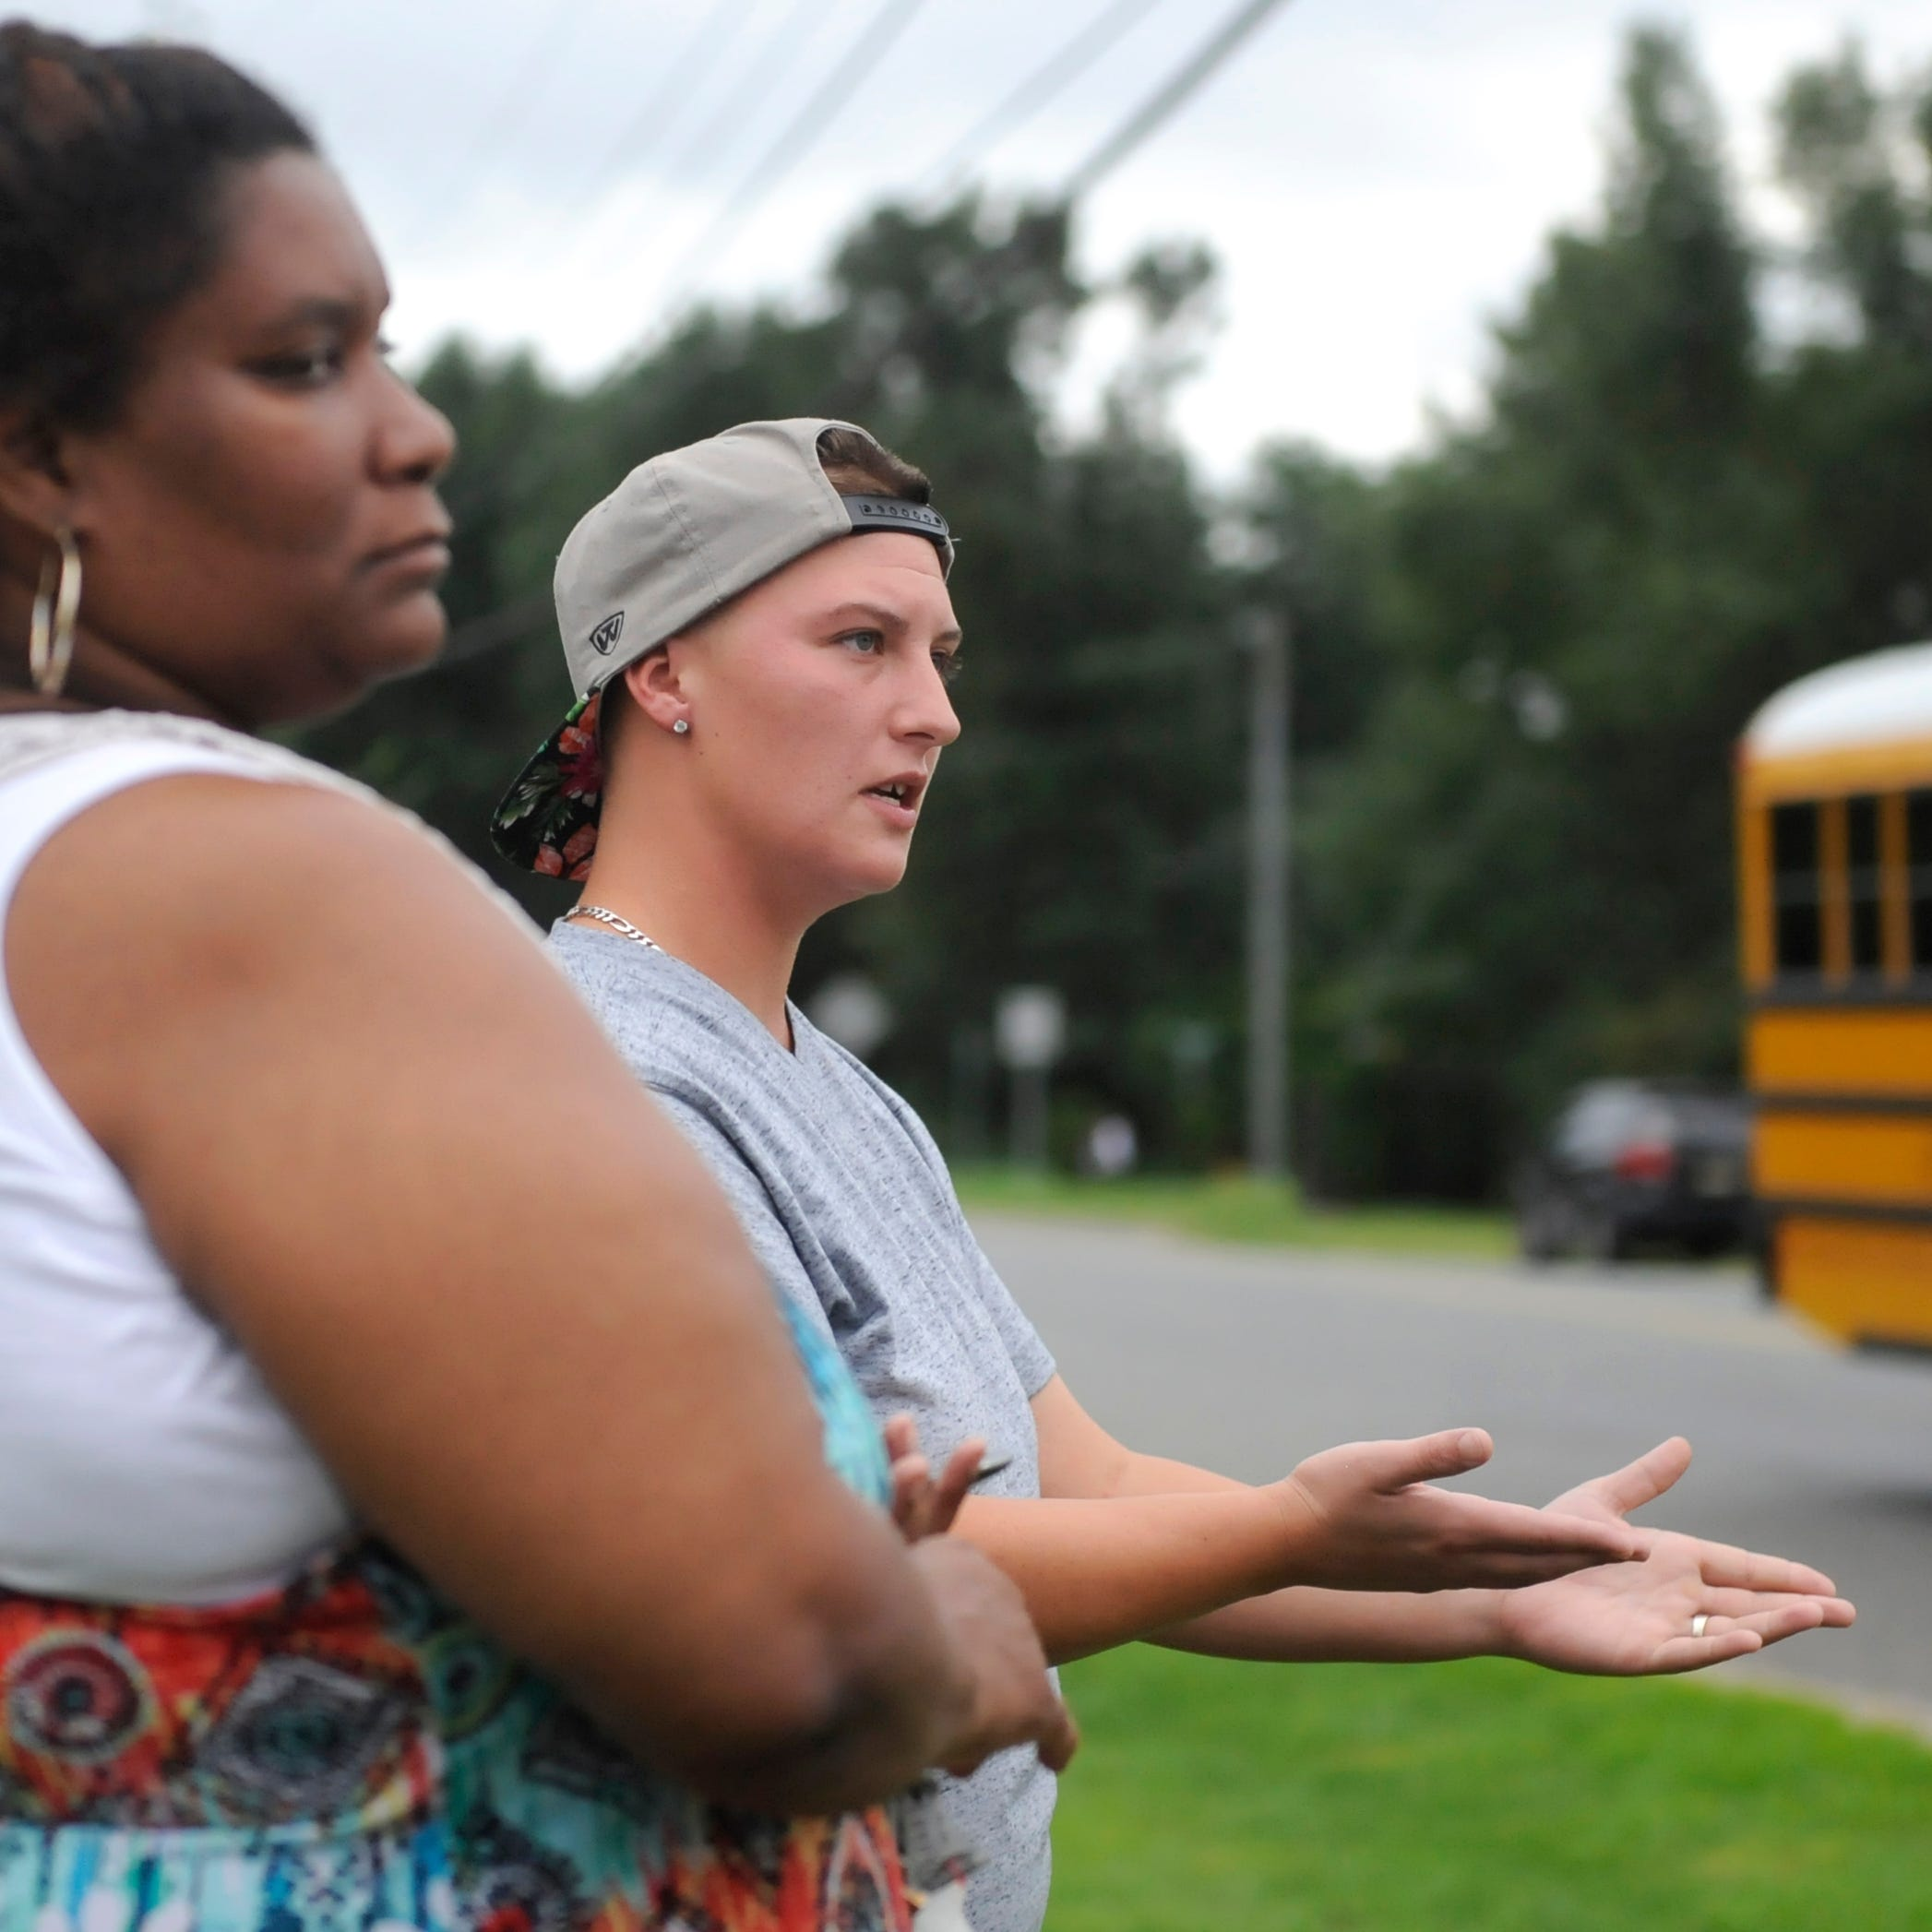 Vineland parents appeal for bus stop relocation